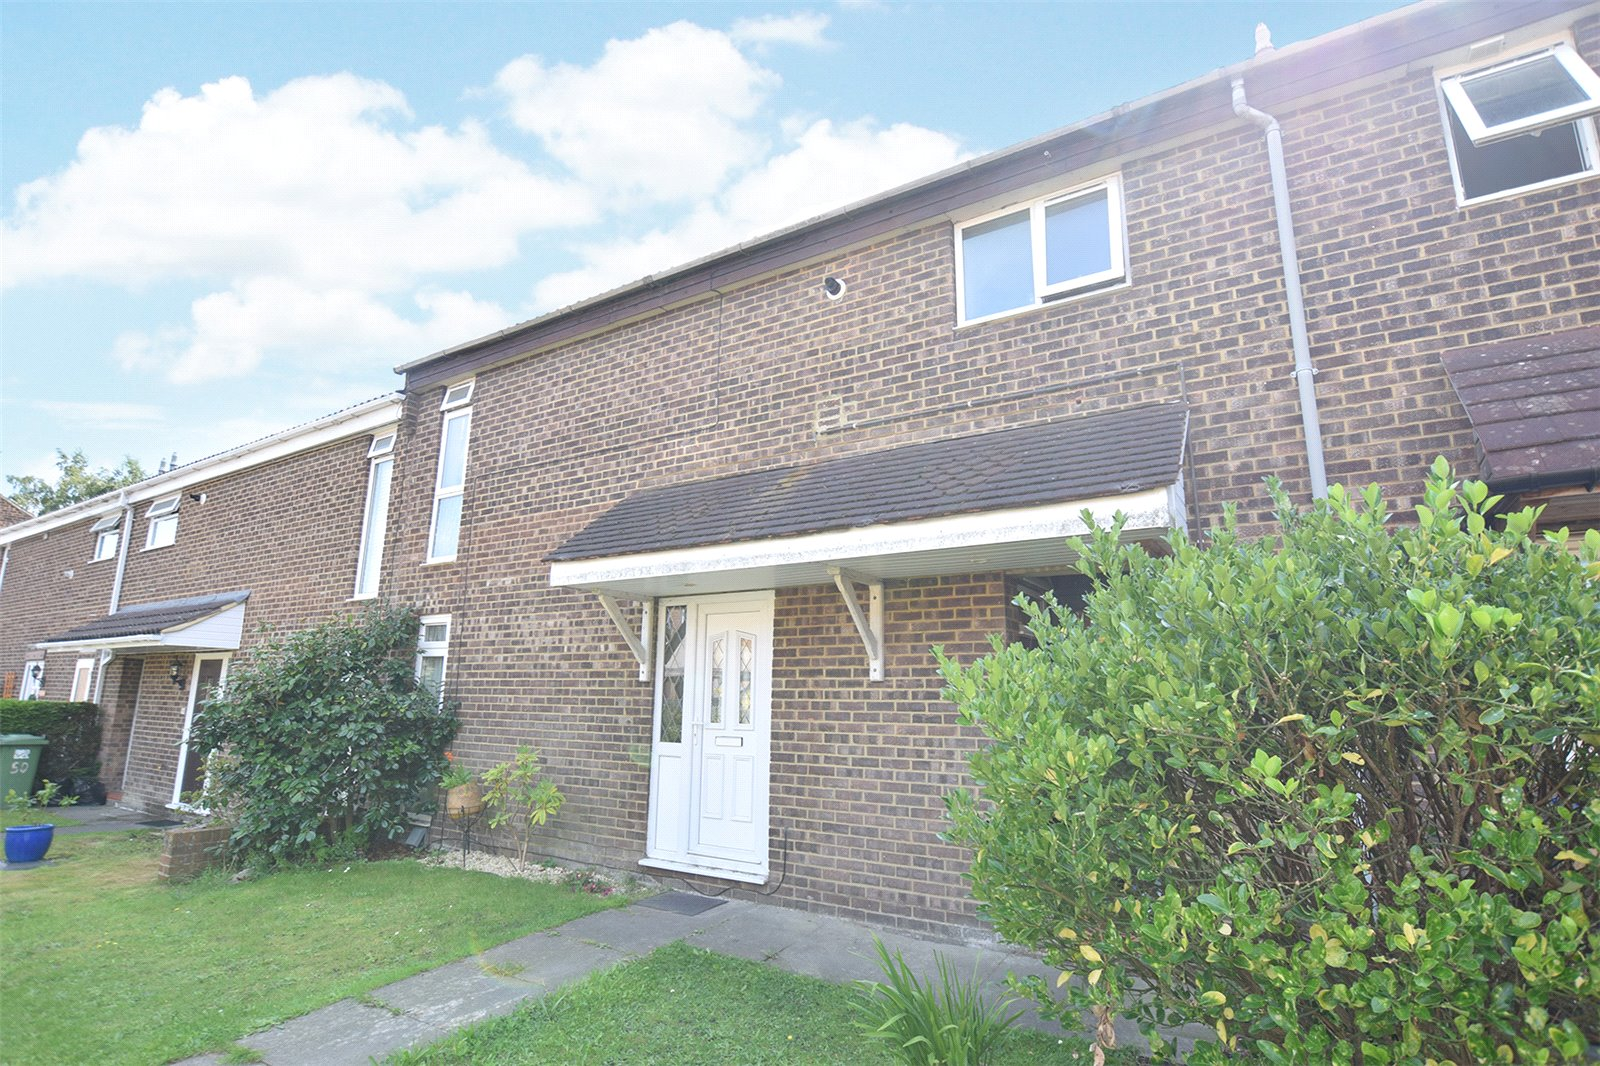 3 Bedrooms Maisonette Flat for sale in Nettlecombe, Bracknell, Berkshire, RG12